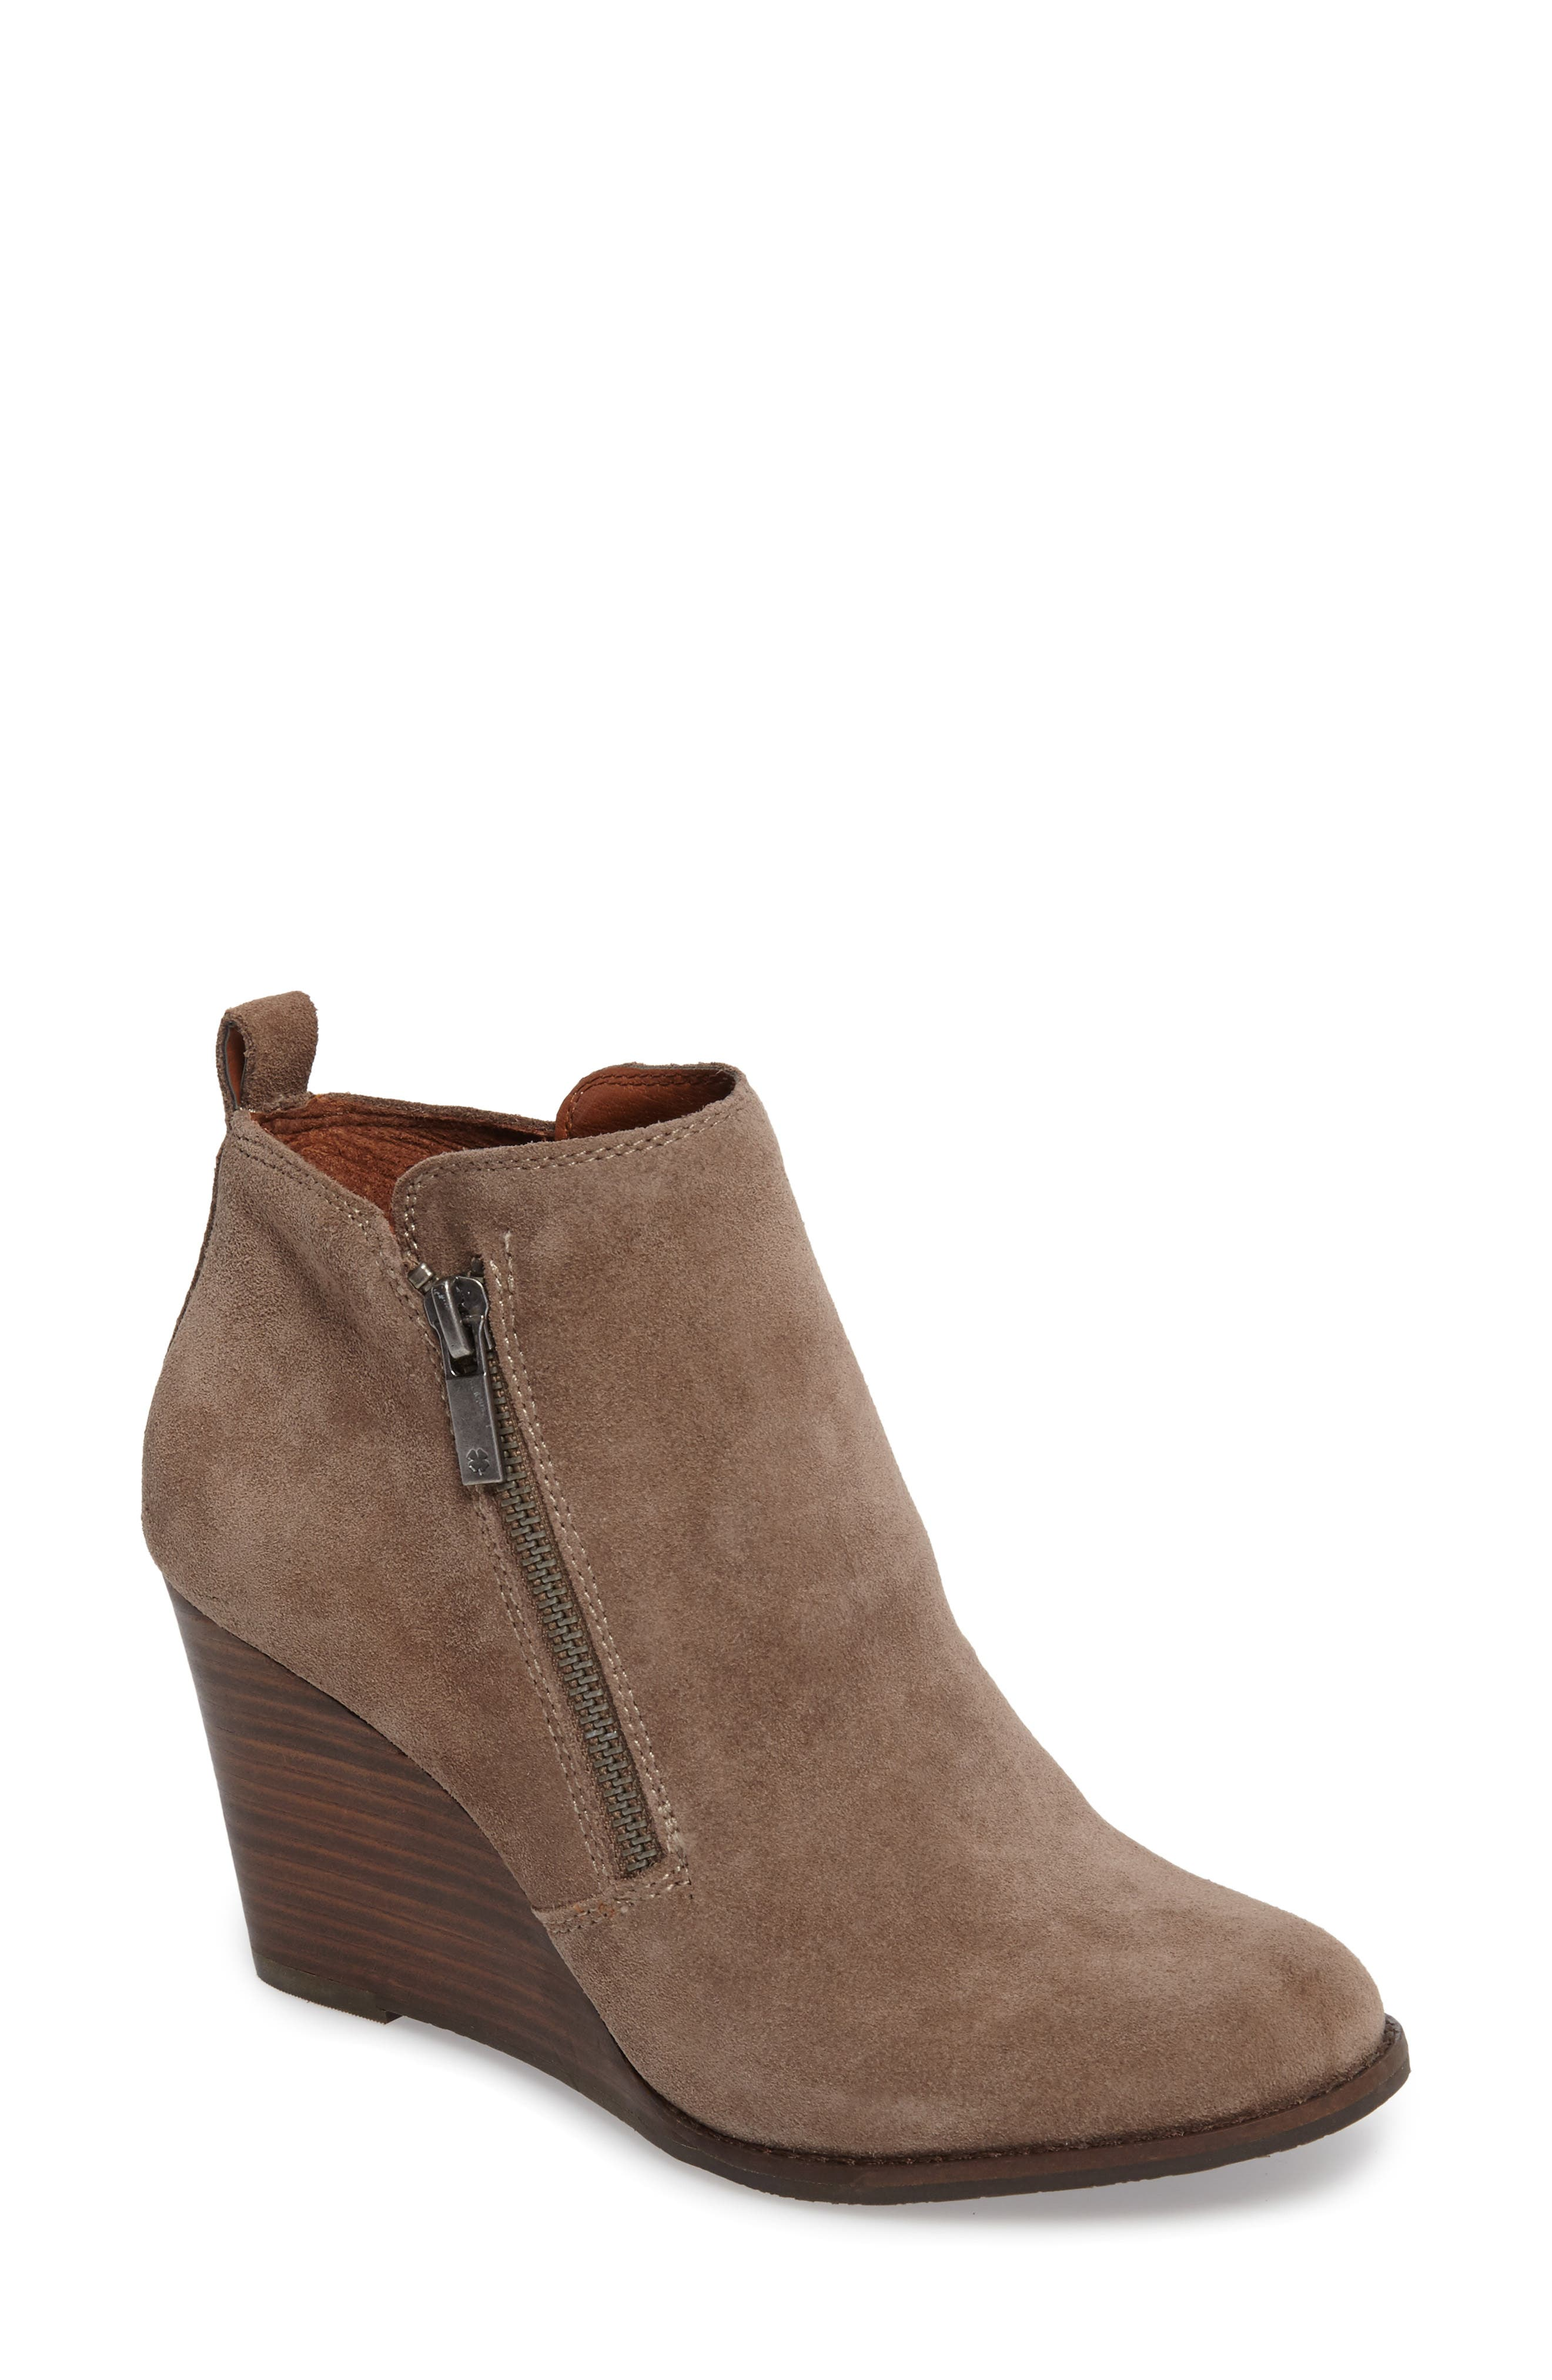 Yesterr Wedge Bootie,                             Main thumbnail 4, color,